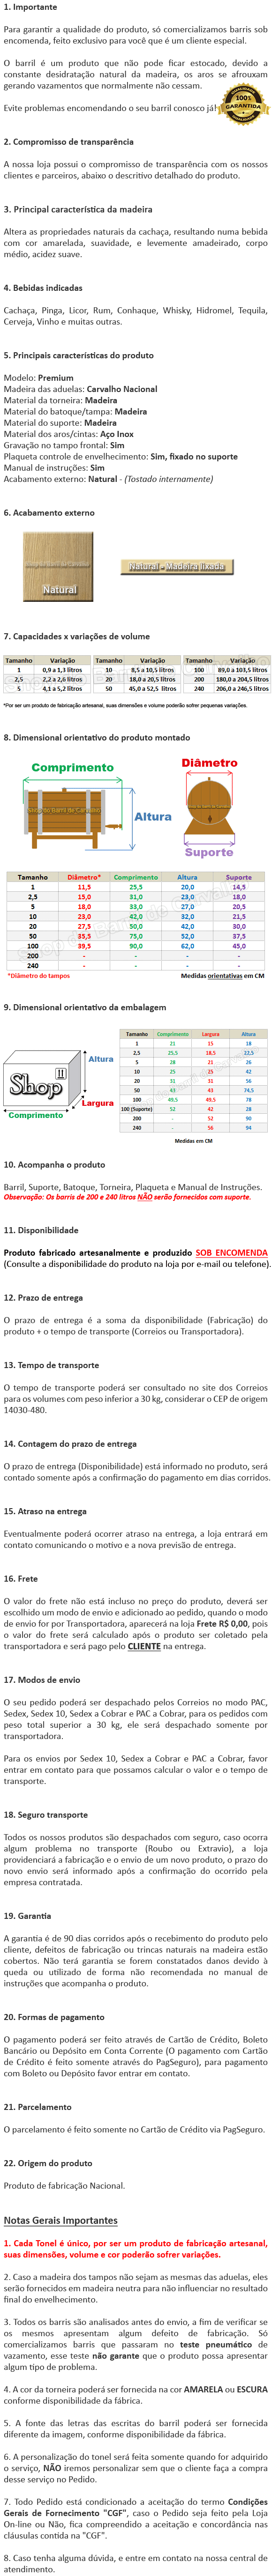 Descricao-Barril-Carvalho-Nacional-Premium-Natural.png